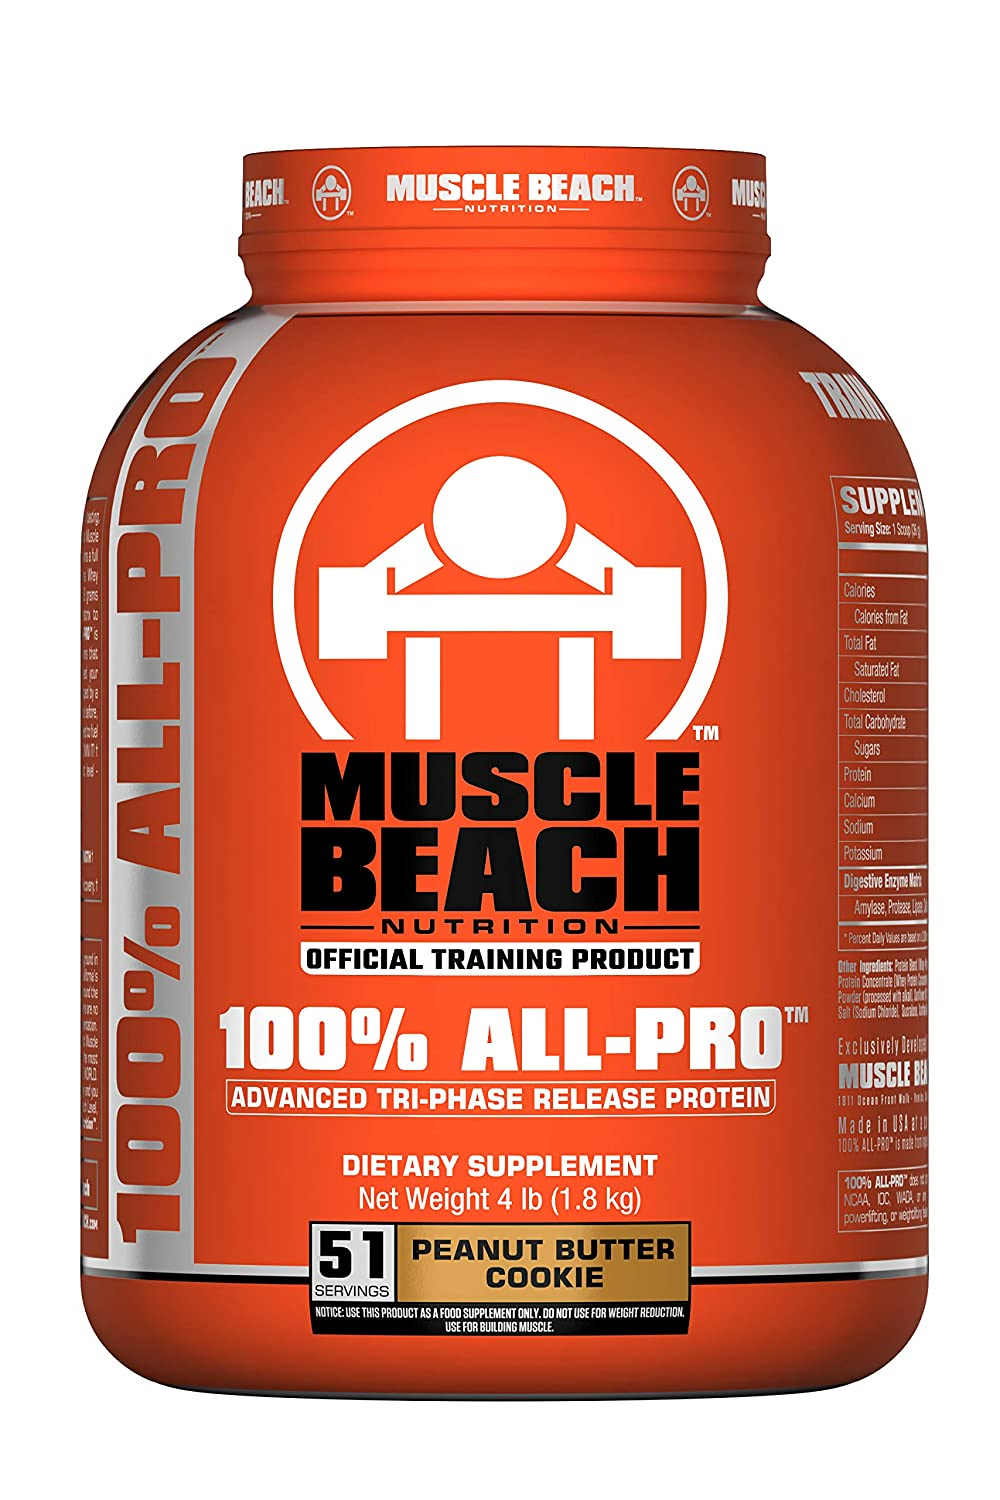 Muscle Beach Nutrition 100 All-Pro Advanced Tri-Phase Release Protein Peanut Butter Cookie, 4lb Whey Protein Isolate, Micellar Casein, Whey Protein Concentrate